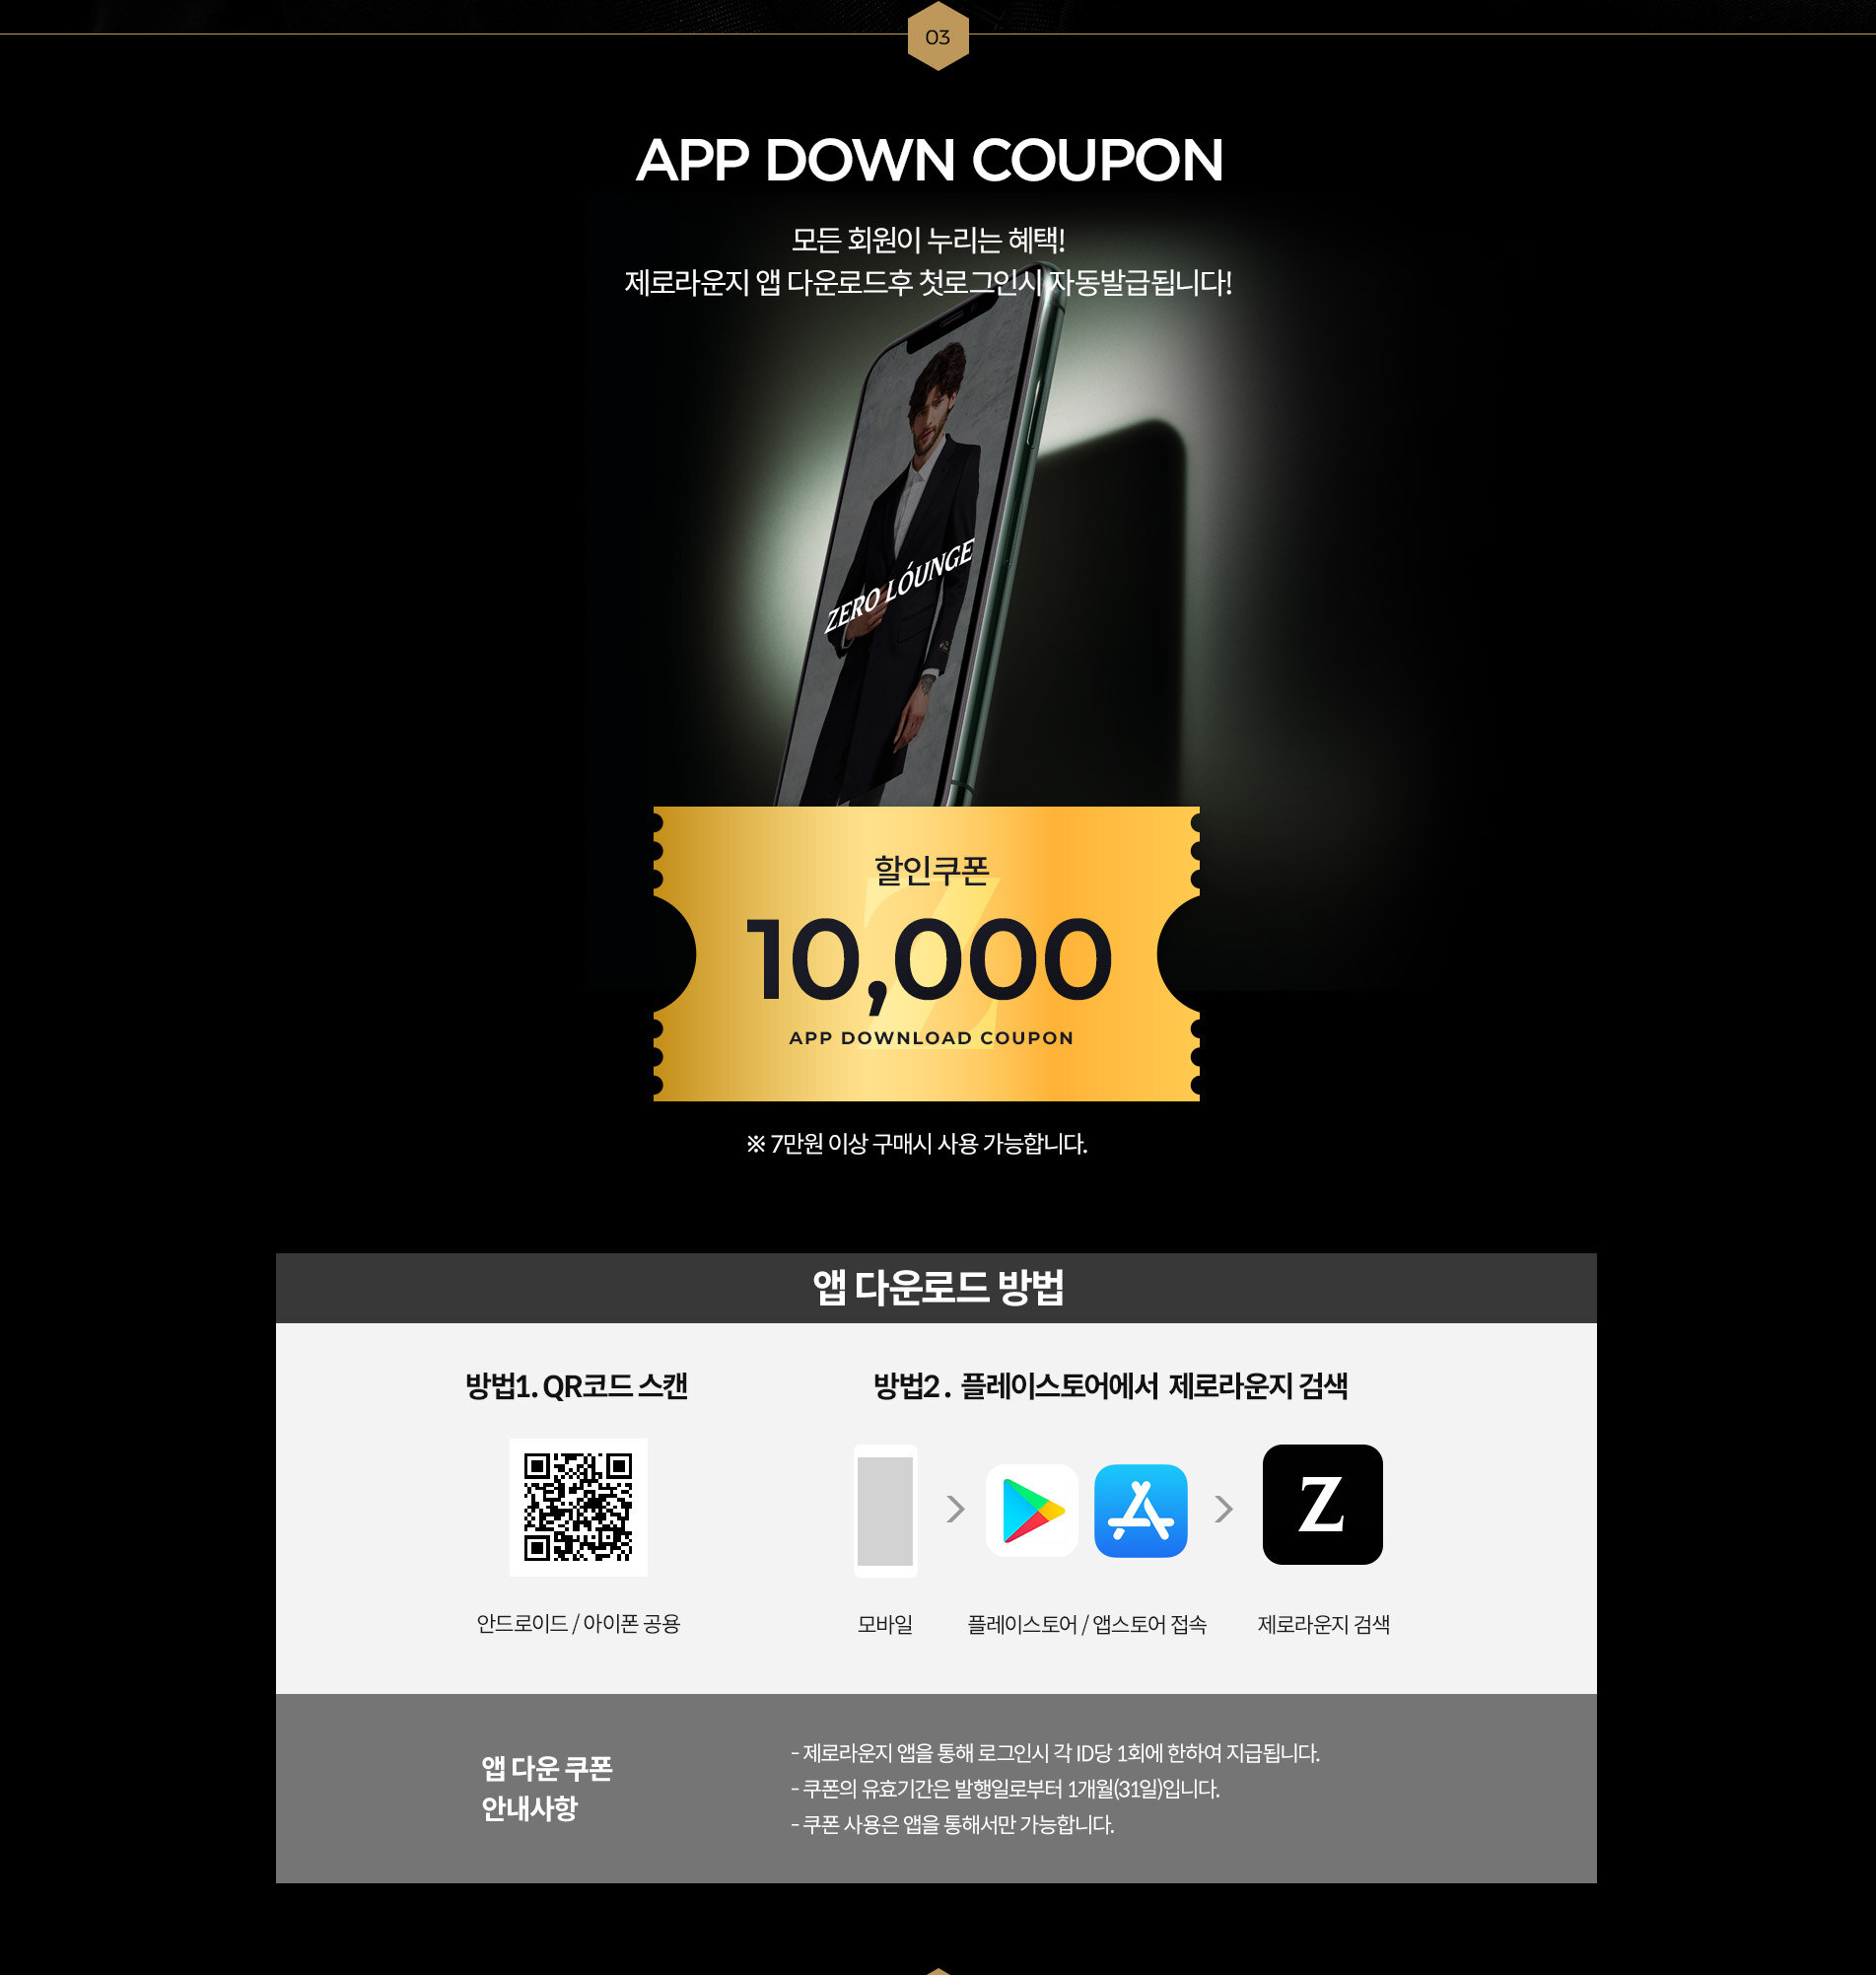 혜택 03 | APP DOWNLOAD COUPON